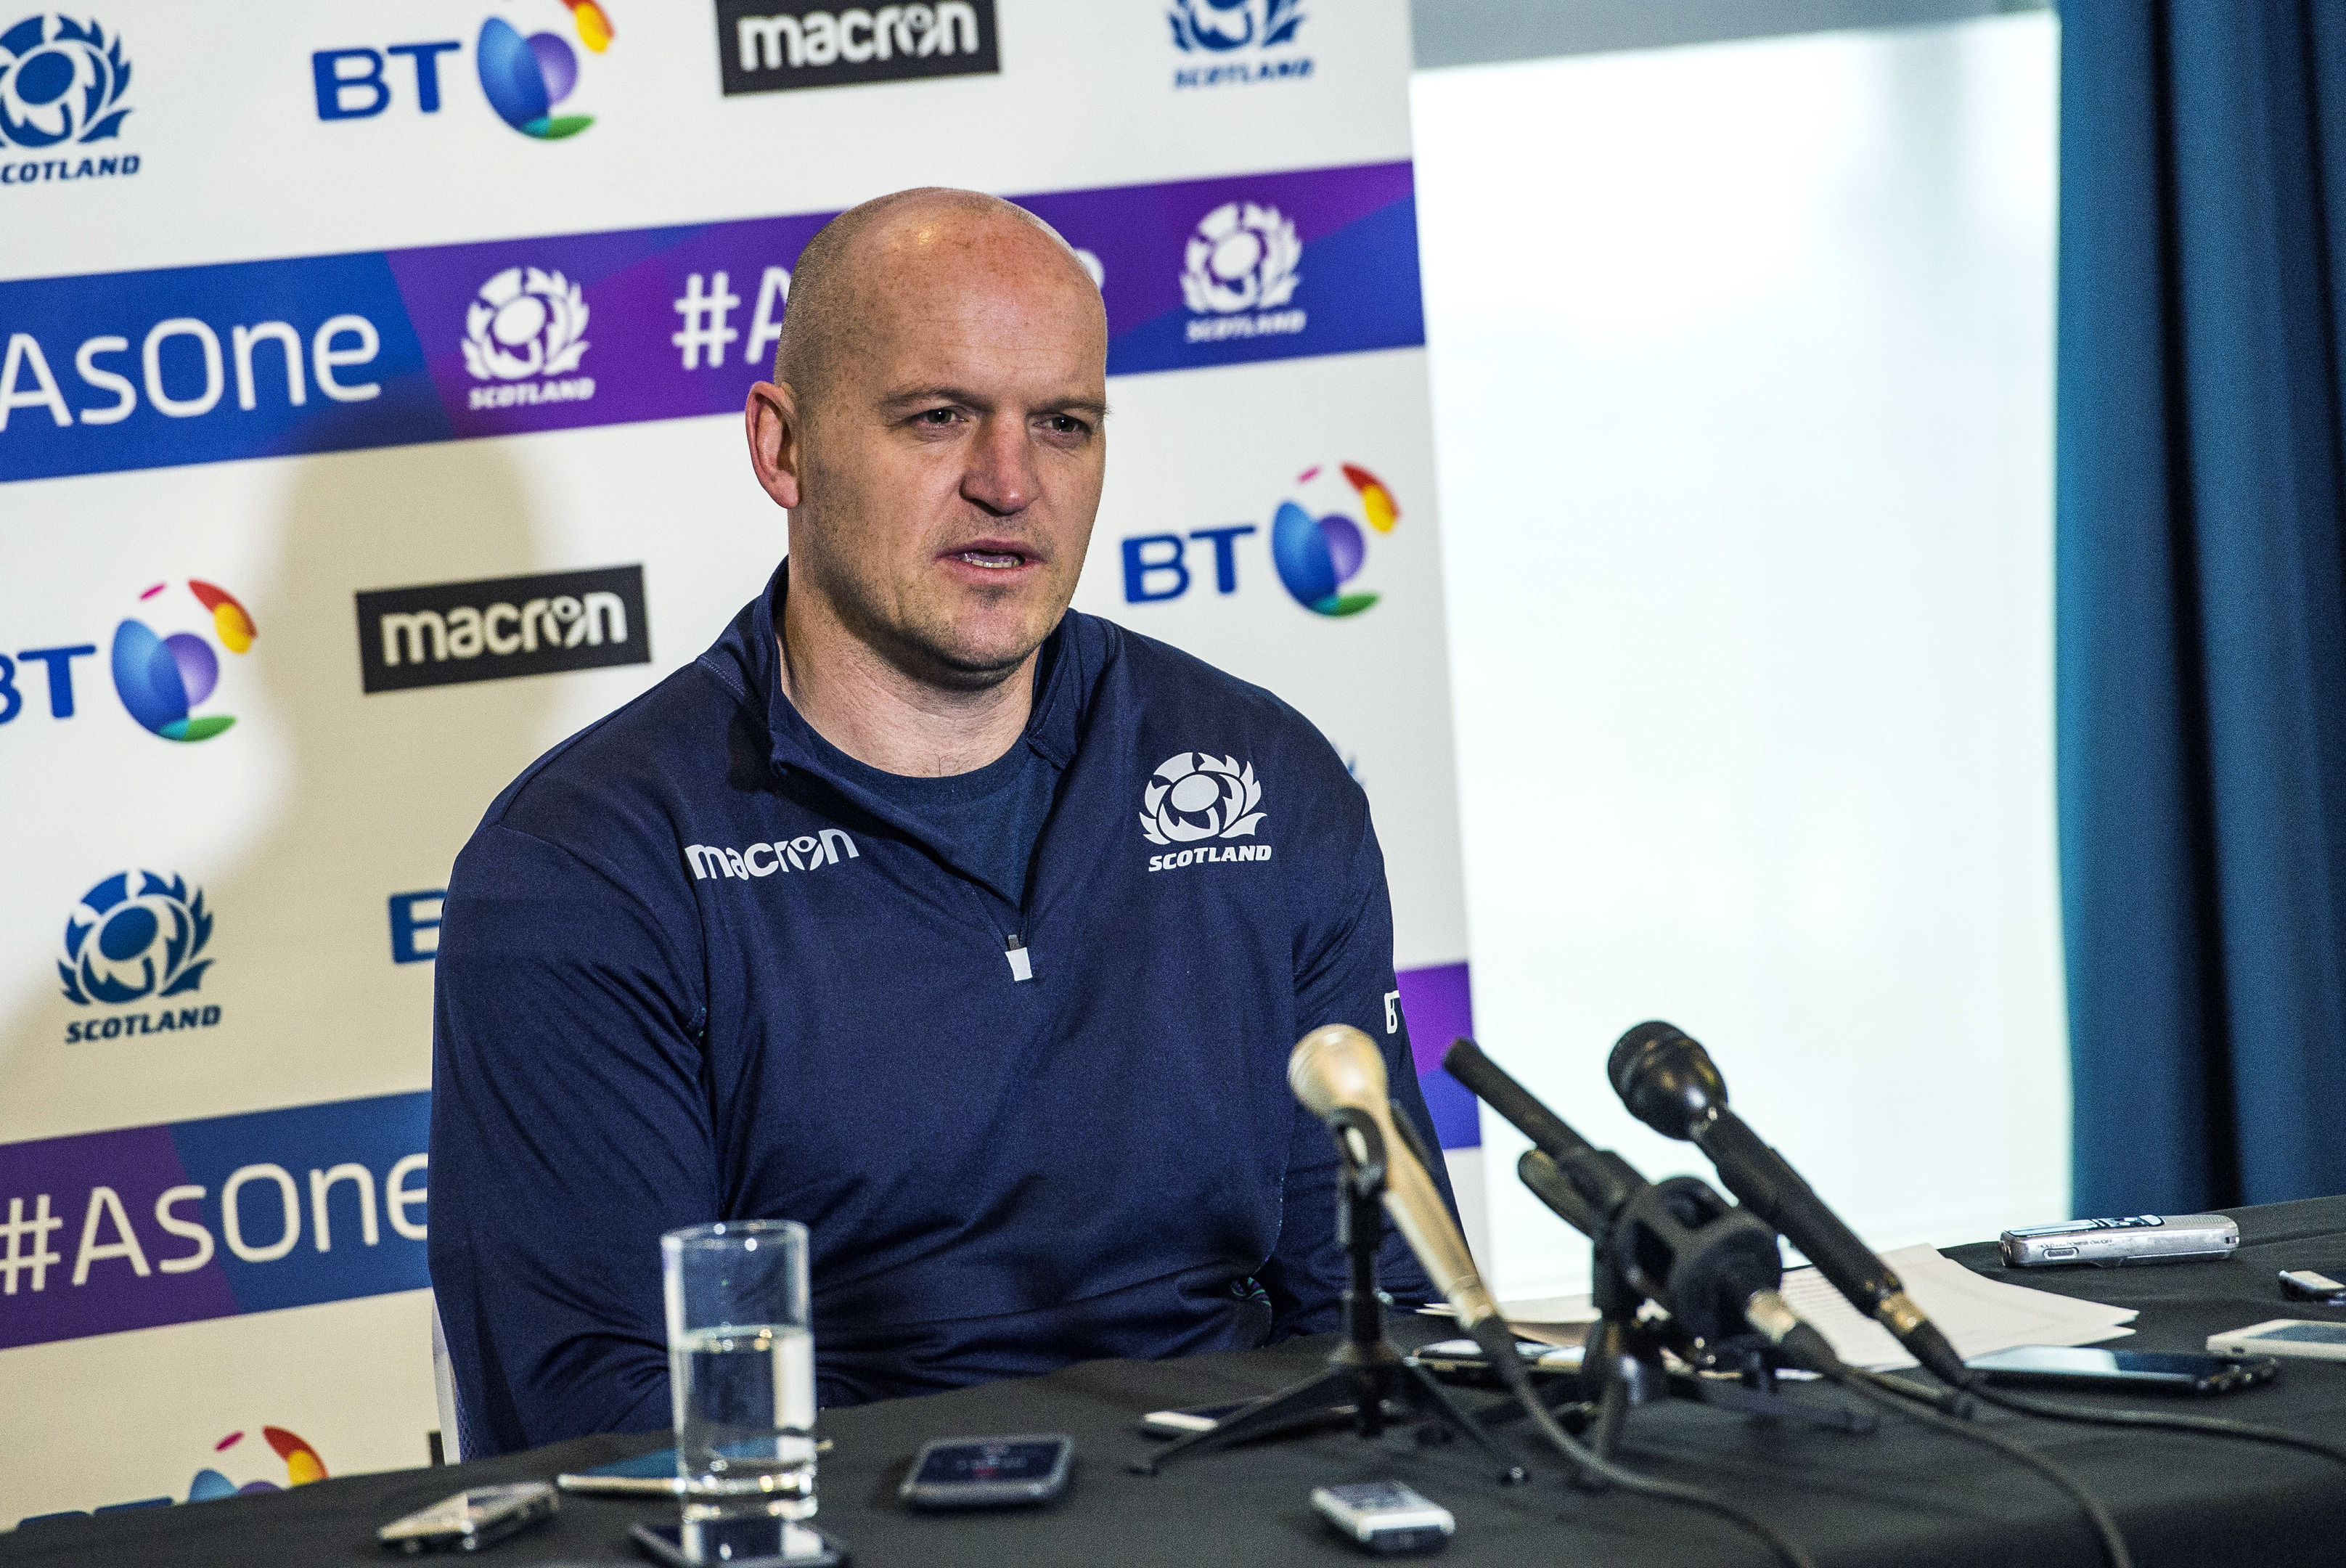 Scotland head coach Gregor Townsend won't accelerate selection for players targeted by England.